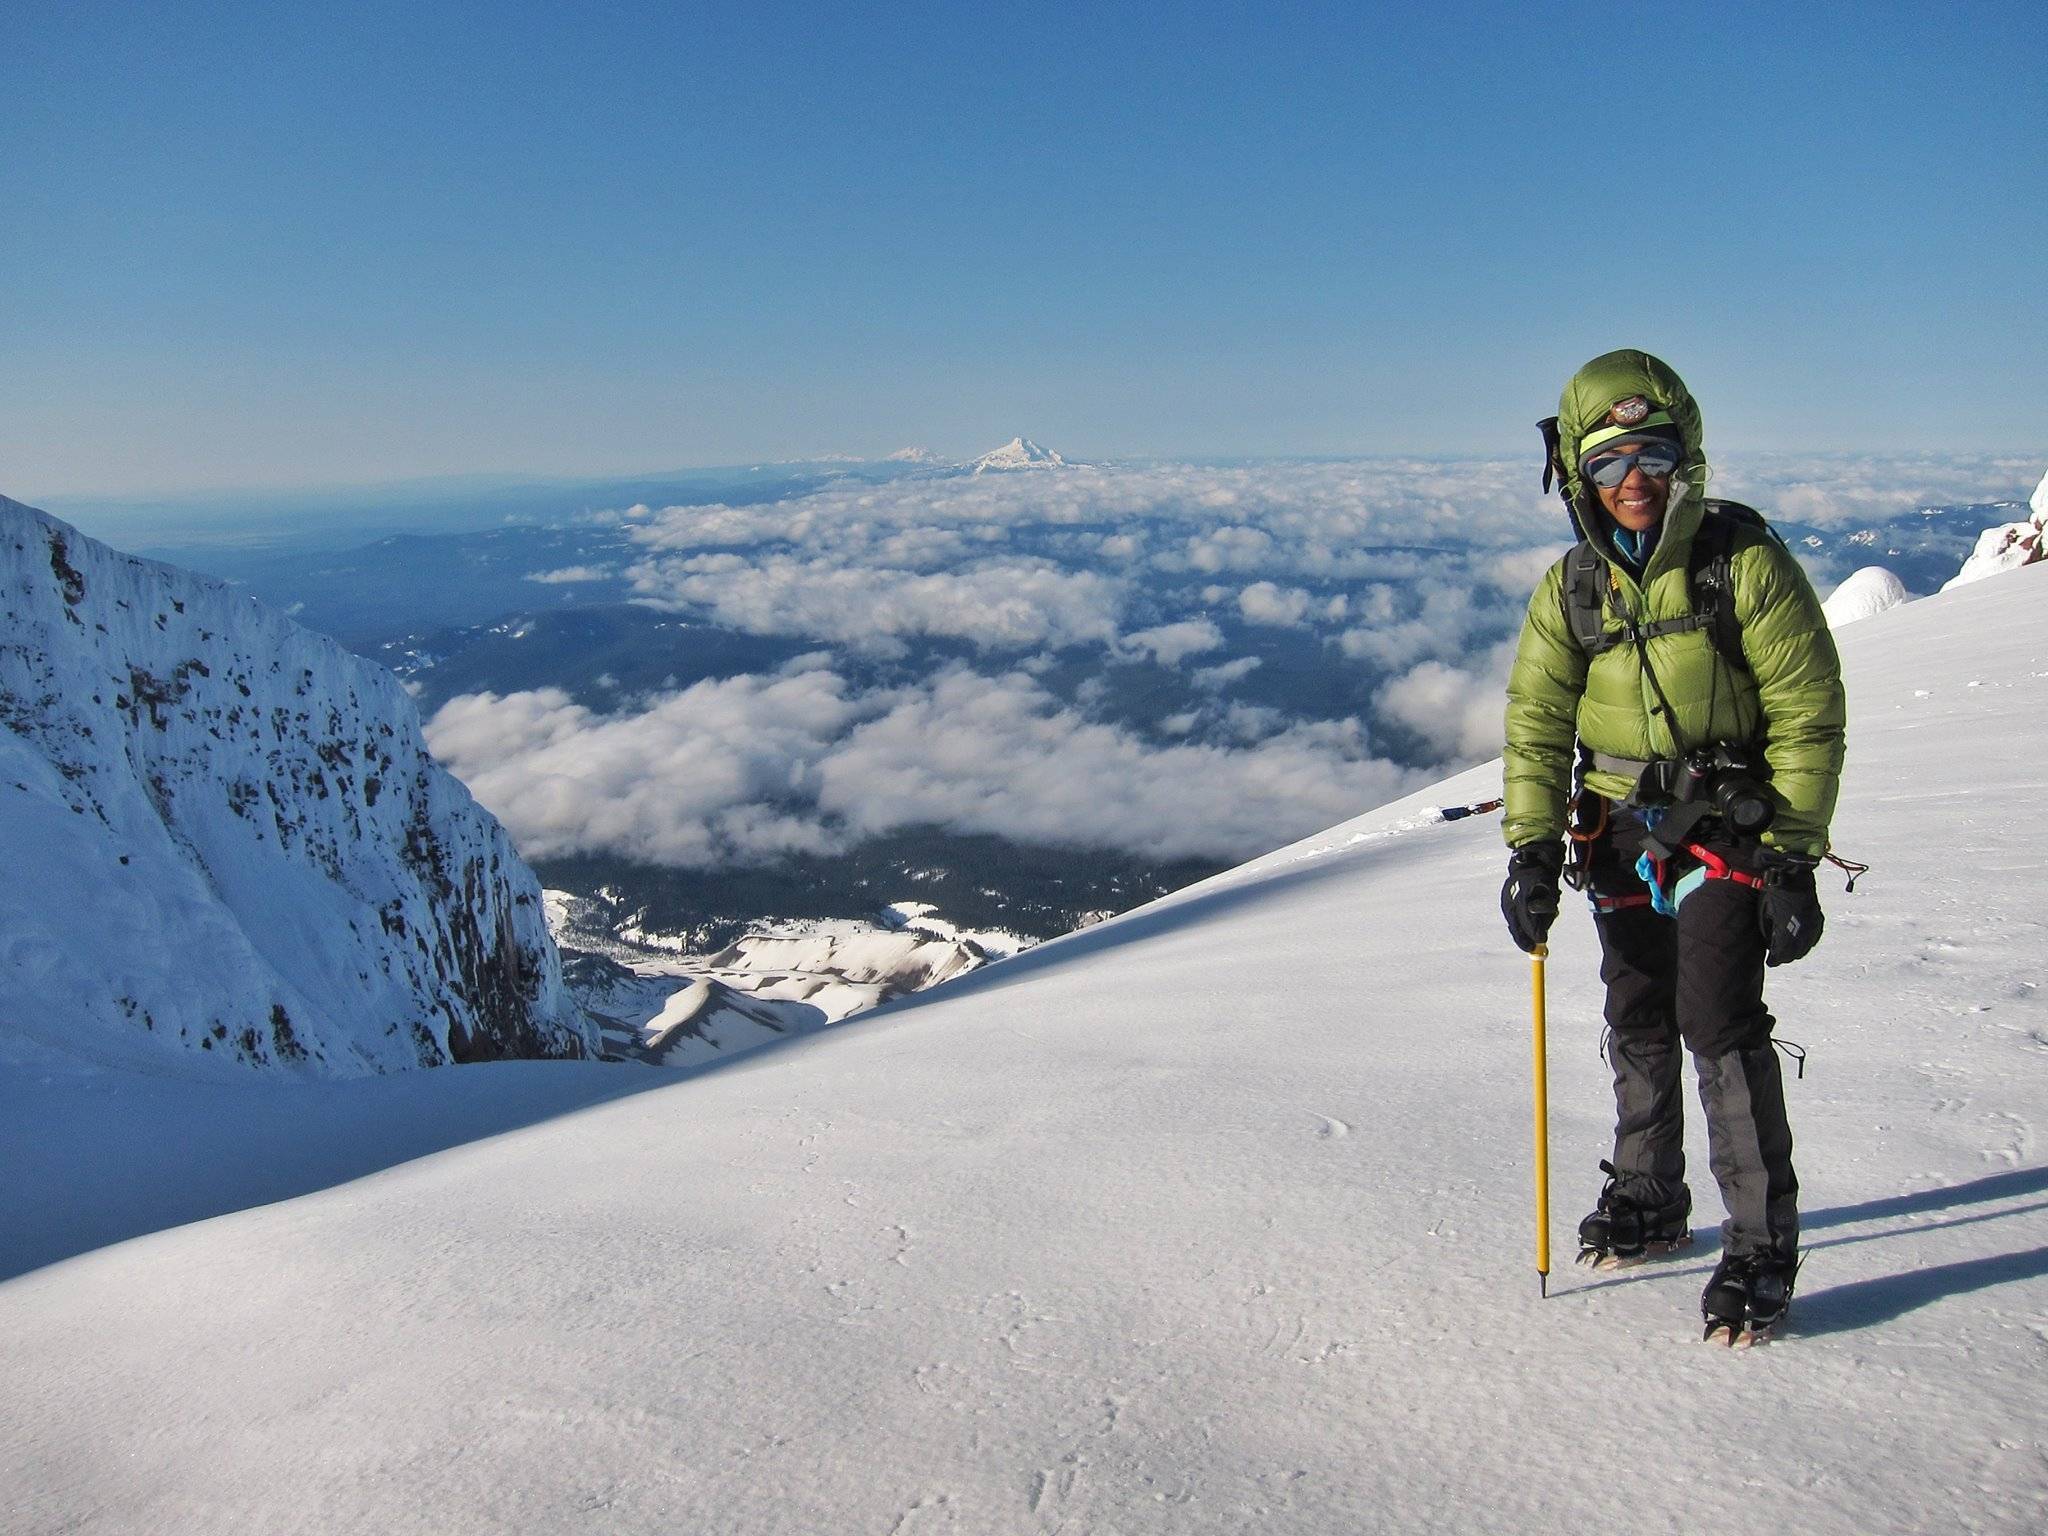 Prior to her expedition in the Georgian Caucuses, the author climbed stratovolcanoes in the Pacific Northwest United States like Mt. Hood ( Wy'East)  which is pictured here.  Photo courtesy of Rebecca Ross